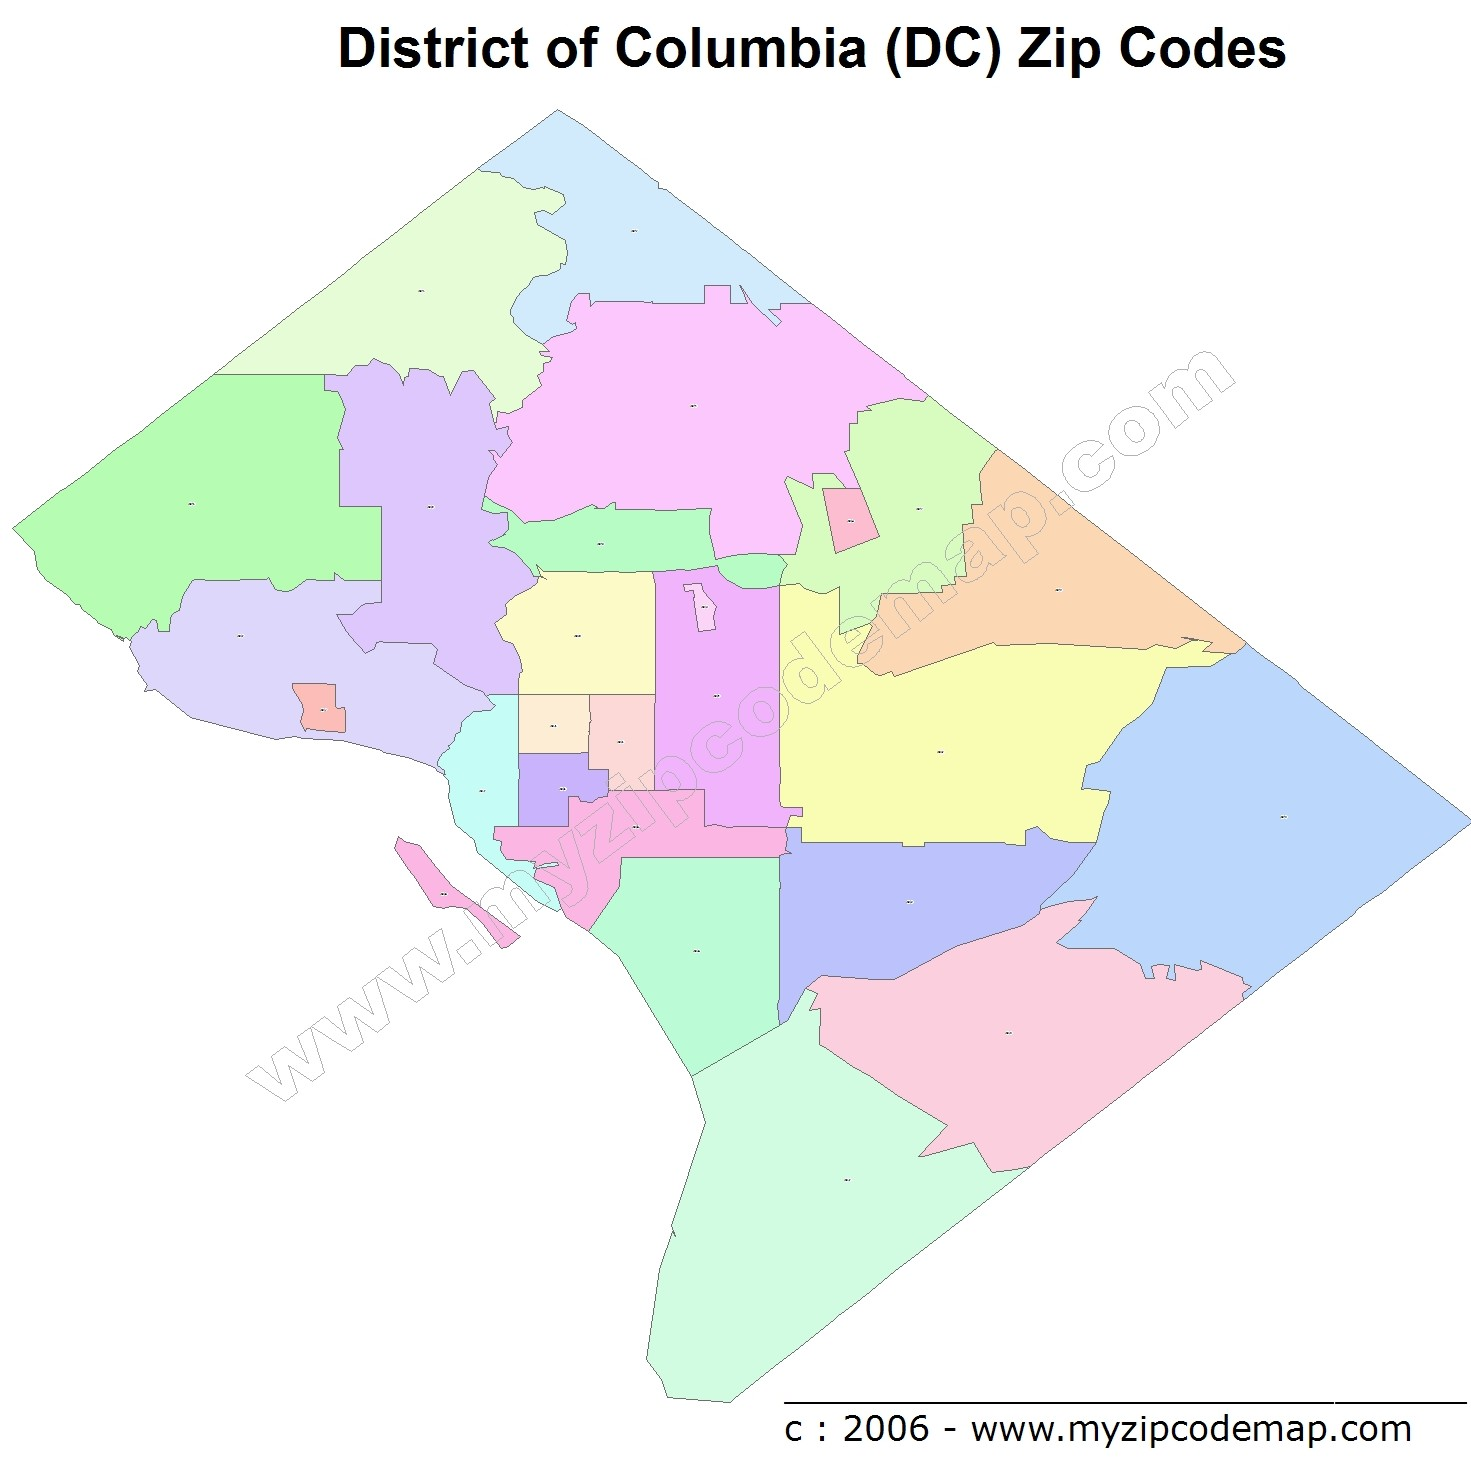 District of Columbia (DC) Zip Code Map